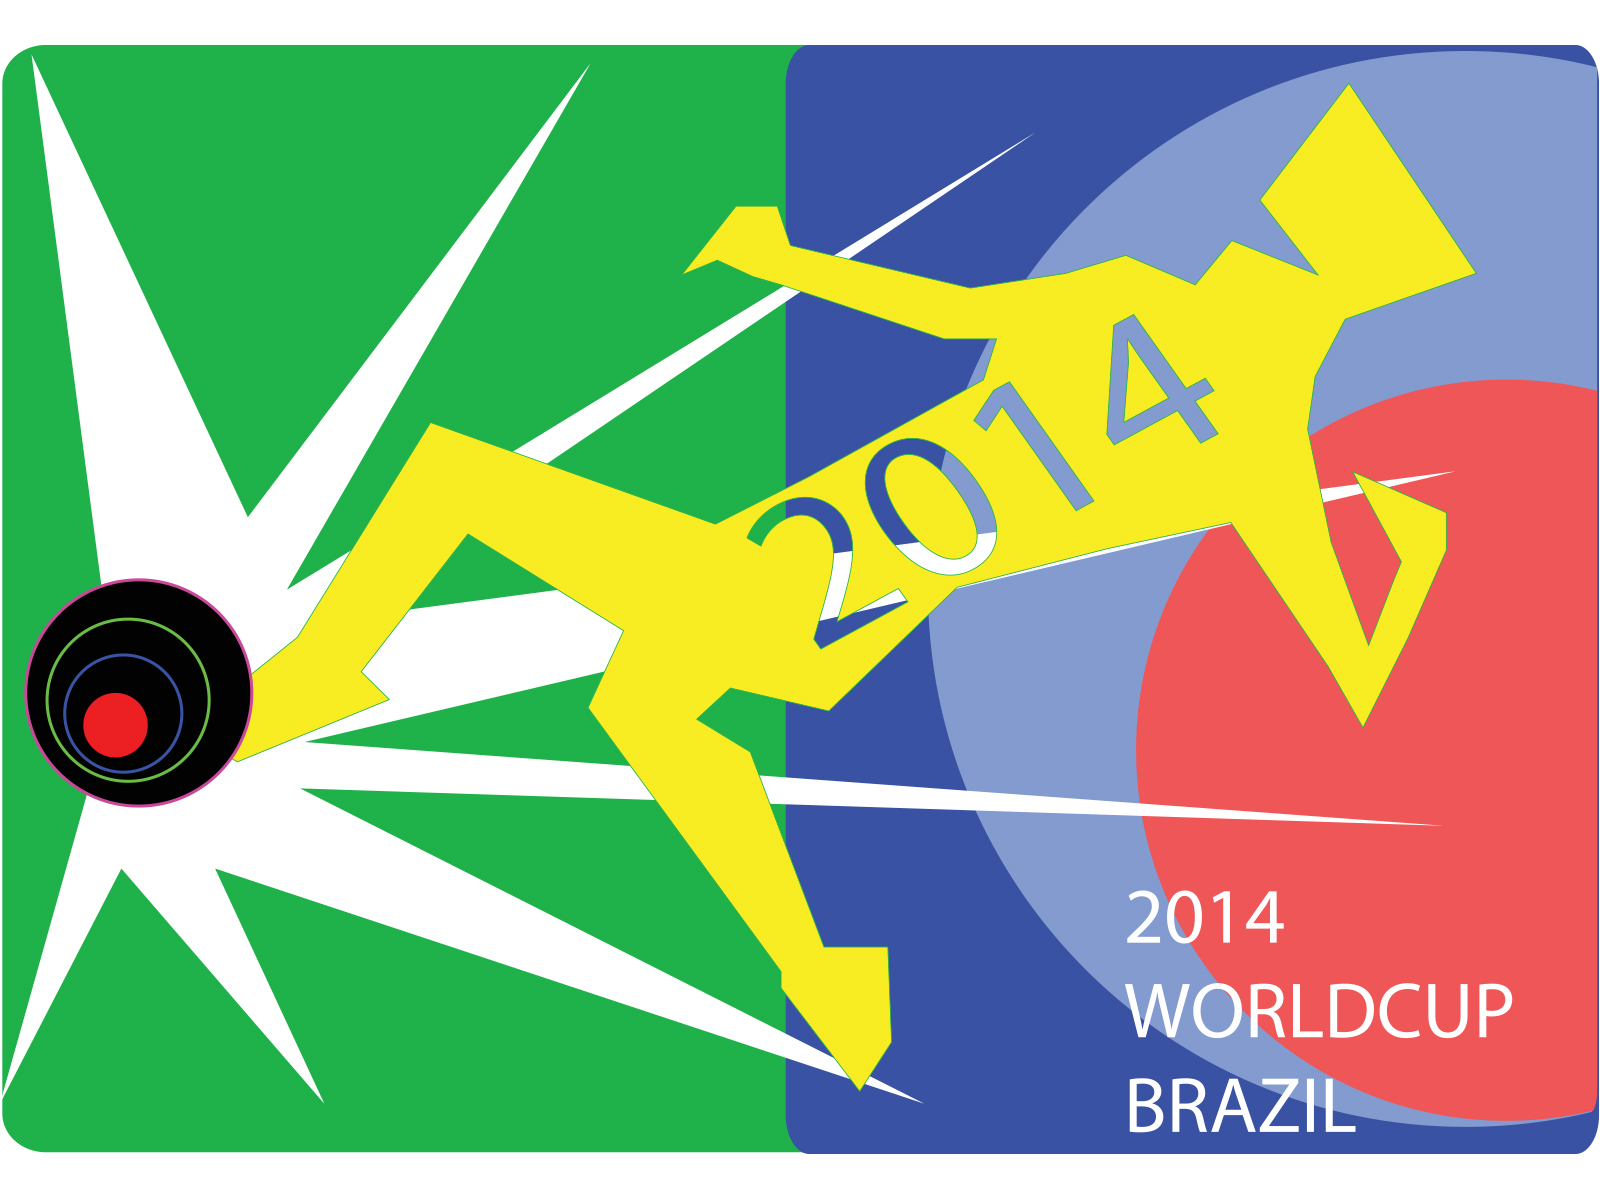 2014 worldcup brazil ppt backgrounds - sports templates - ppt grounds, Presentation templates